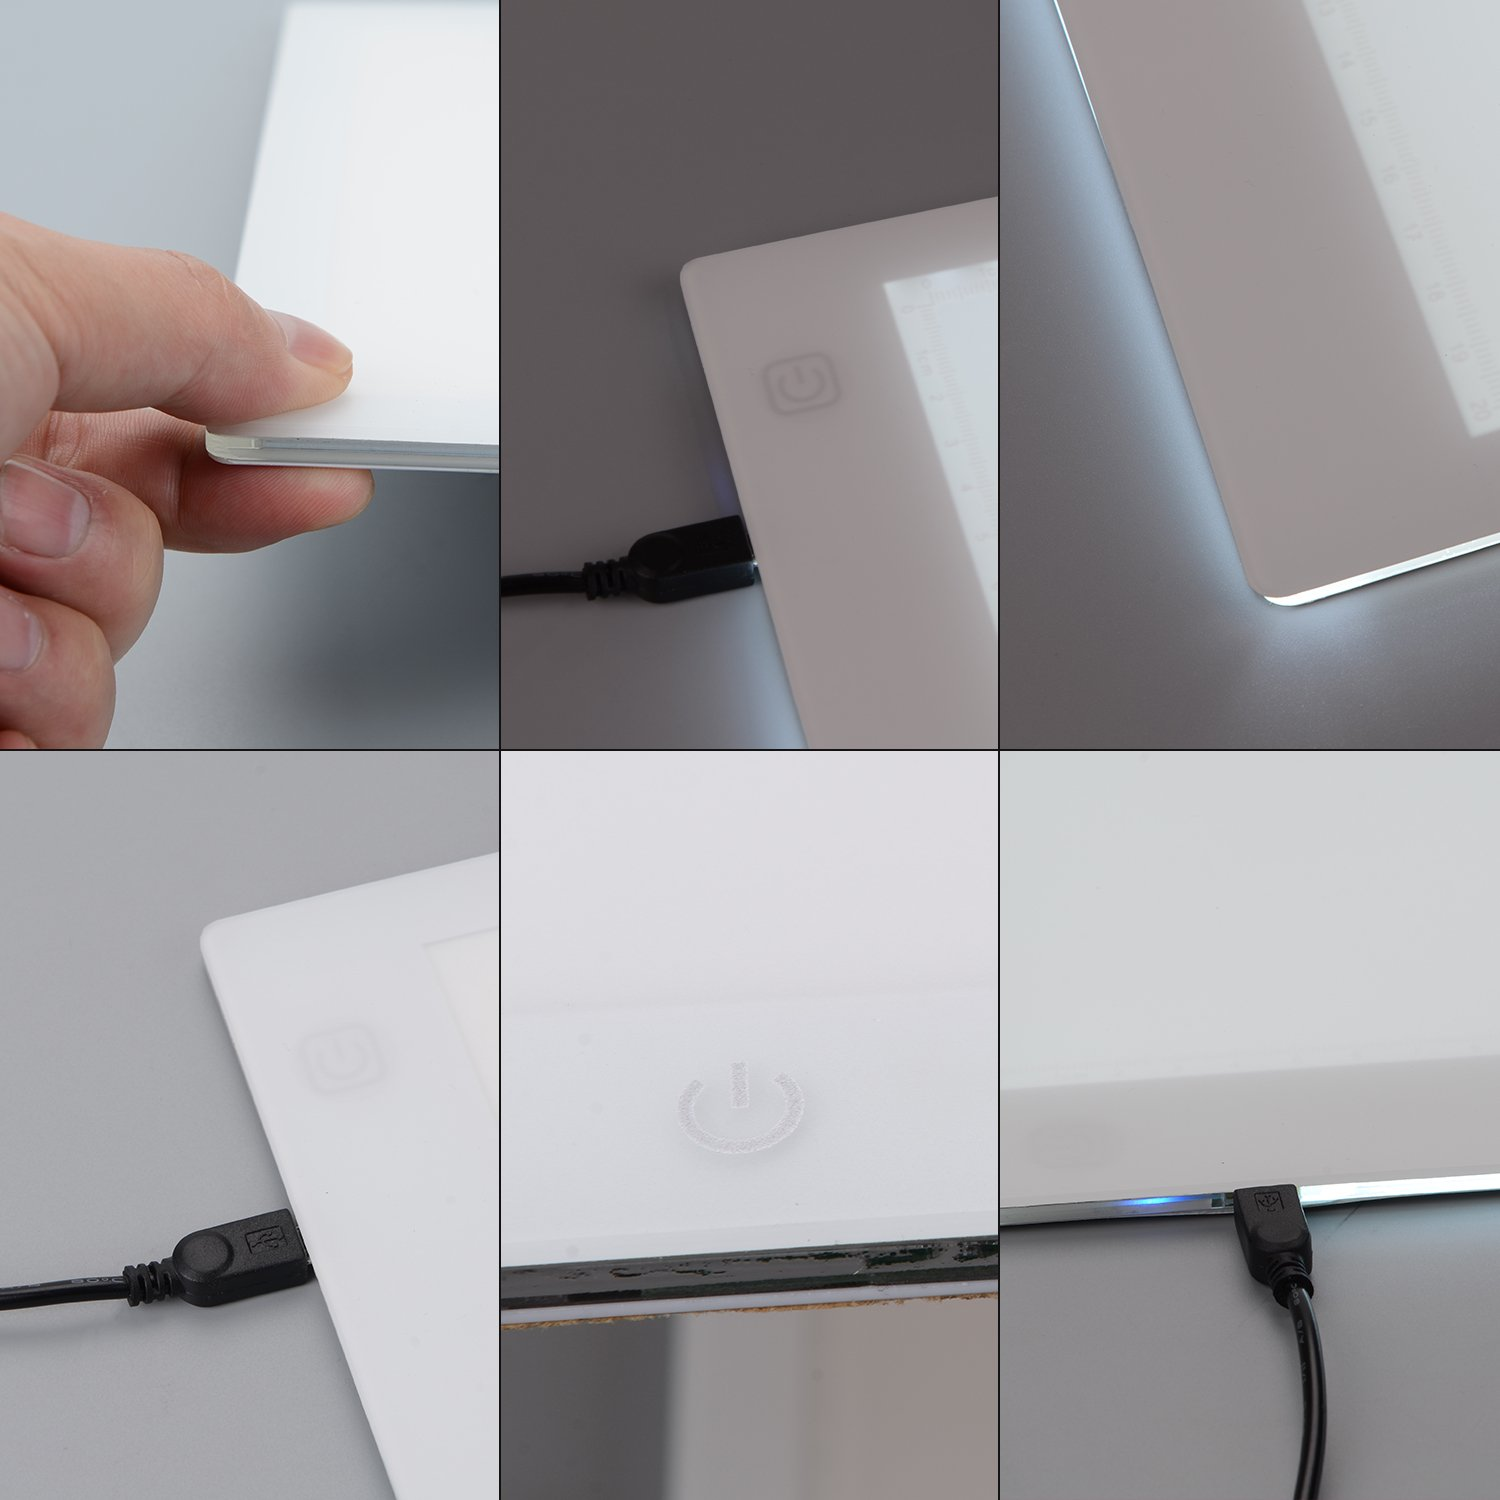 A4 Ultra-Thin Portable LED Light Box Tracer USB Power Cable